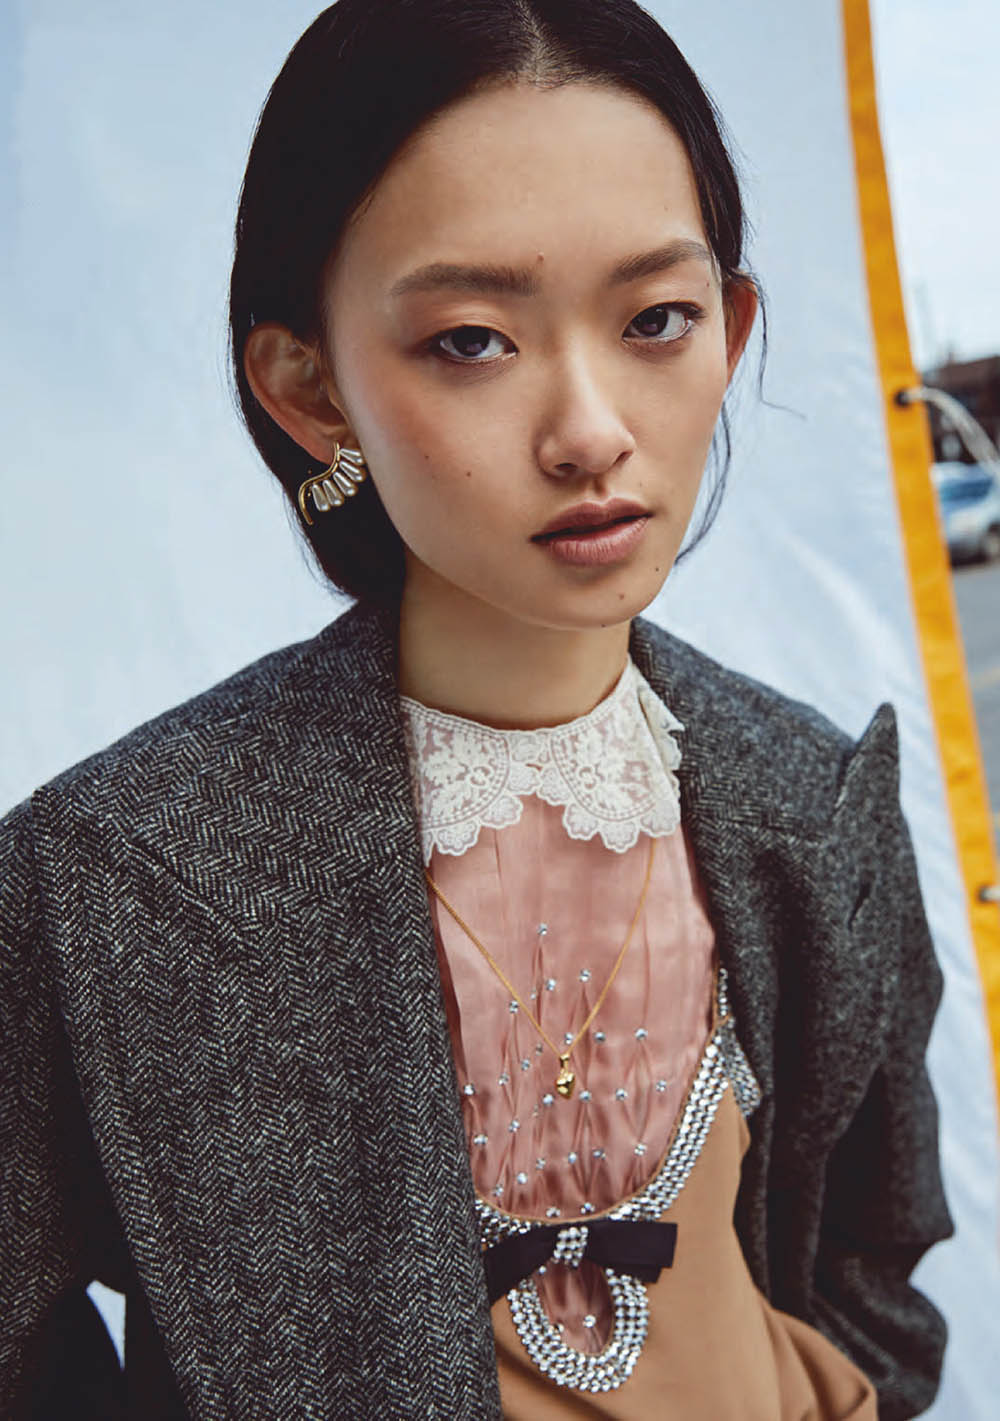 Julee Huang and Samara Young by Brent Goldsmith for Elle Canada December 2020 January 2021